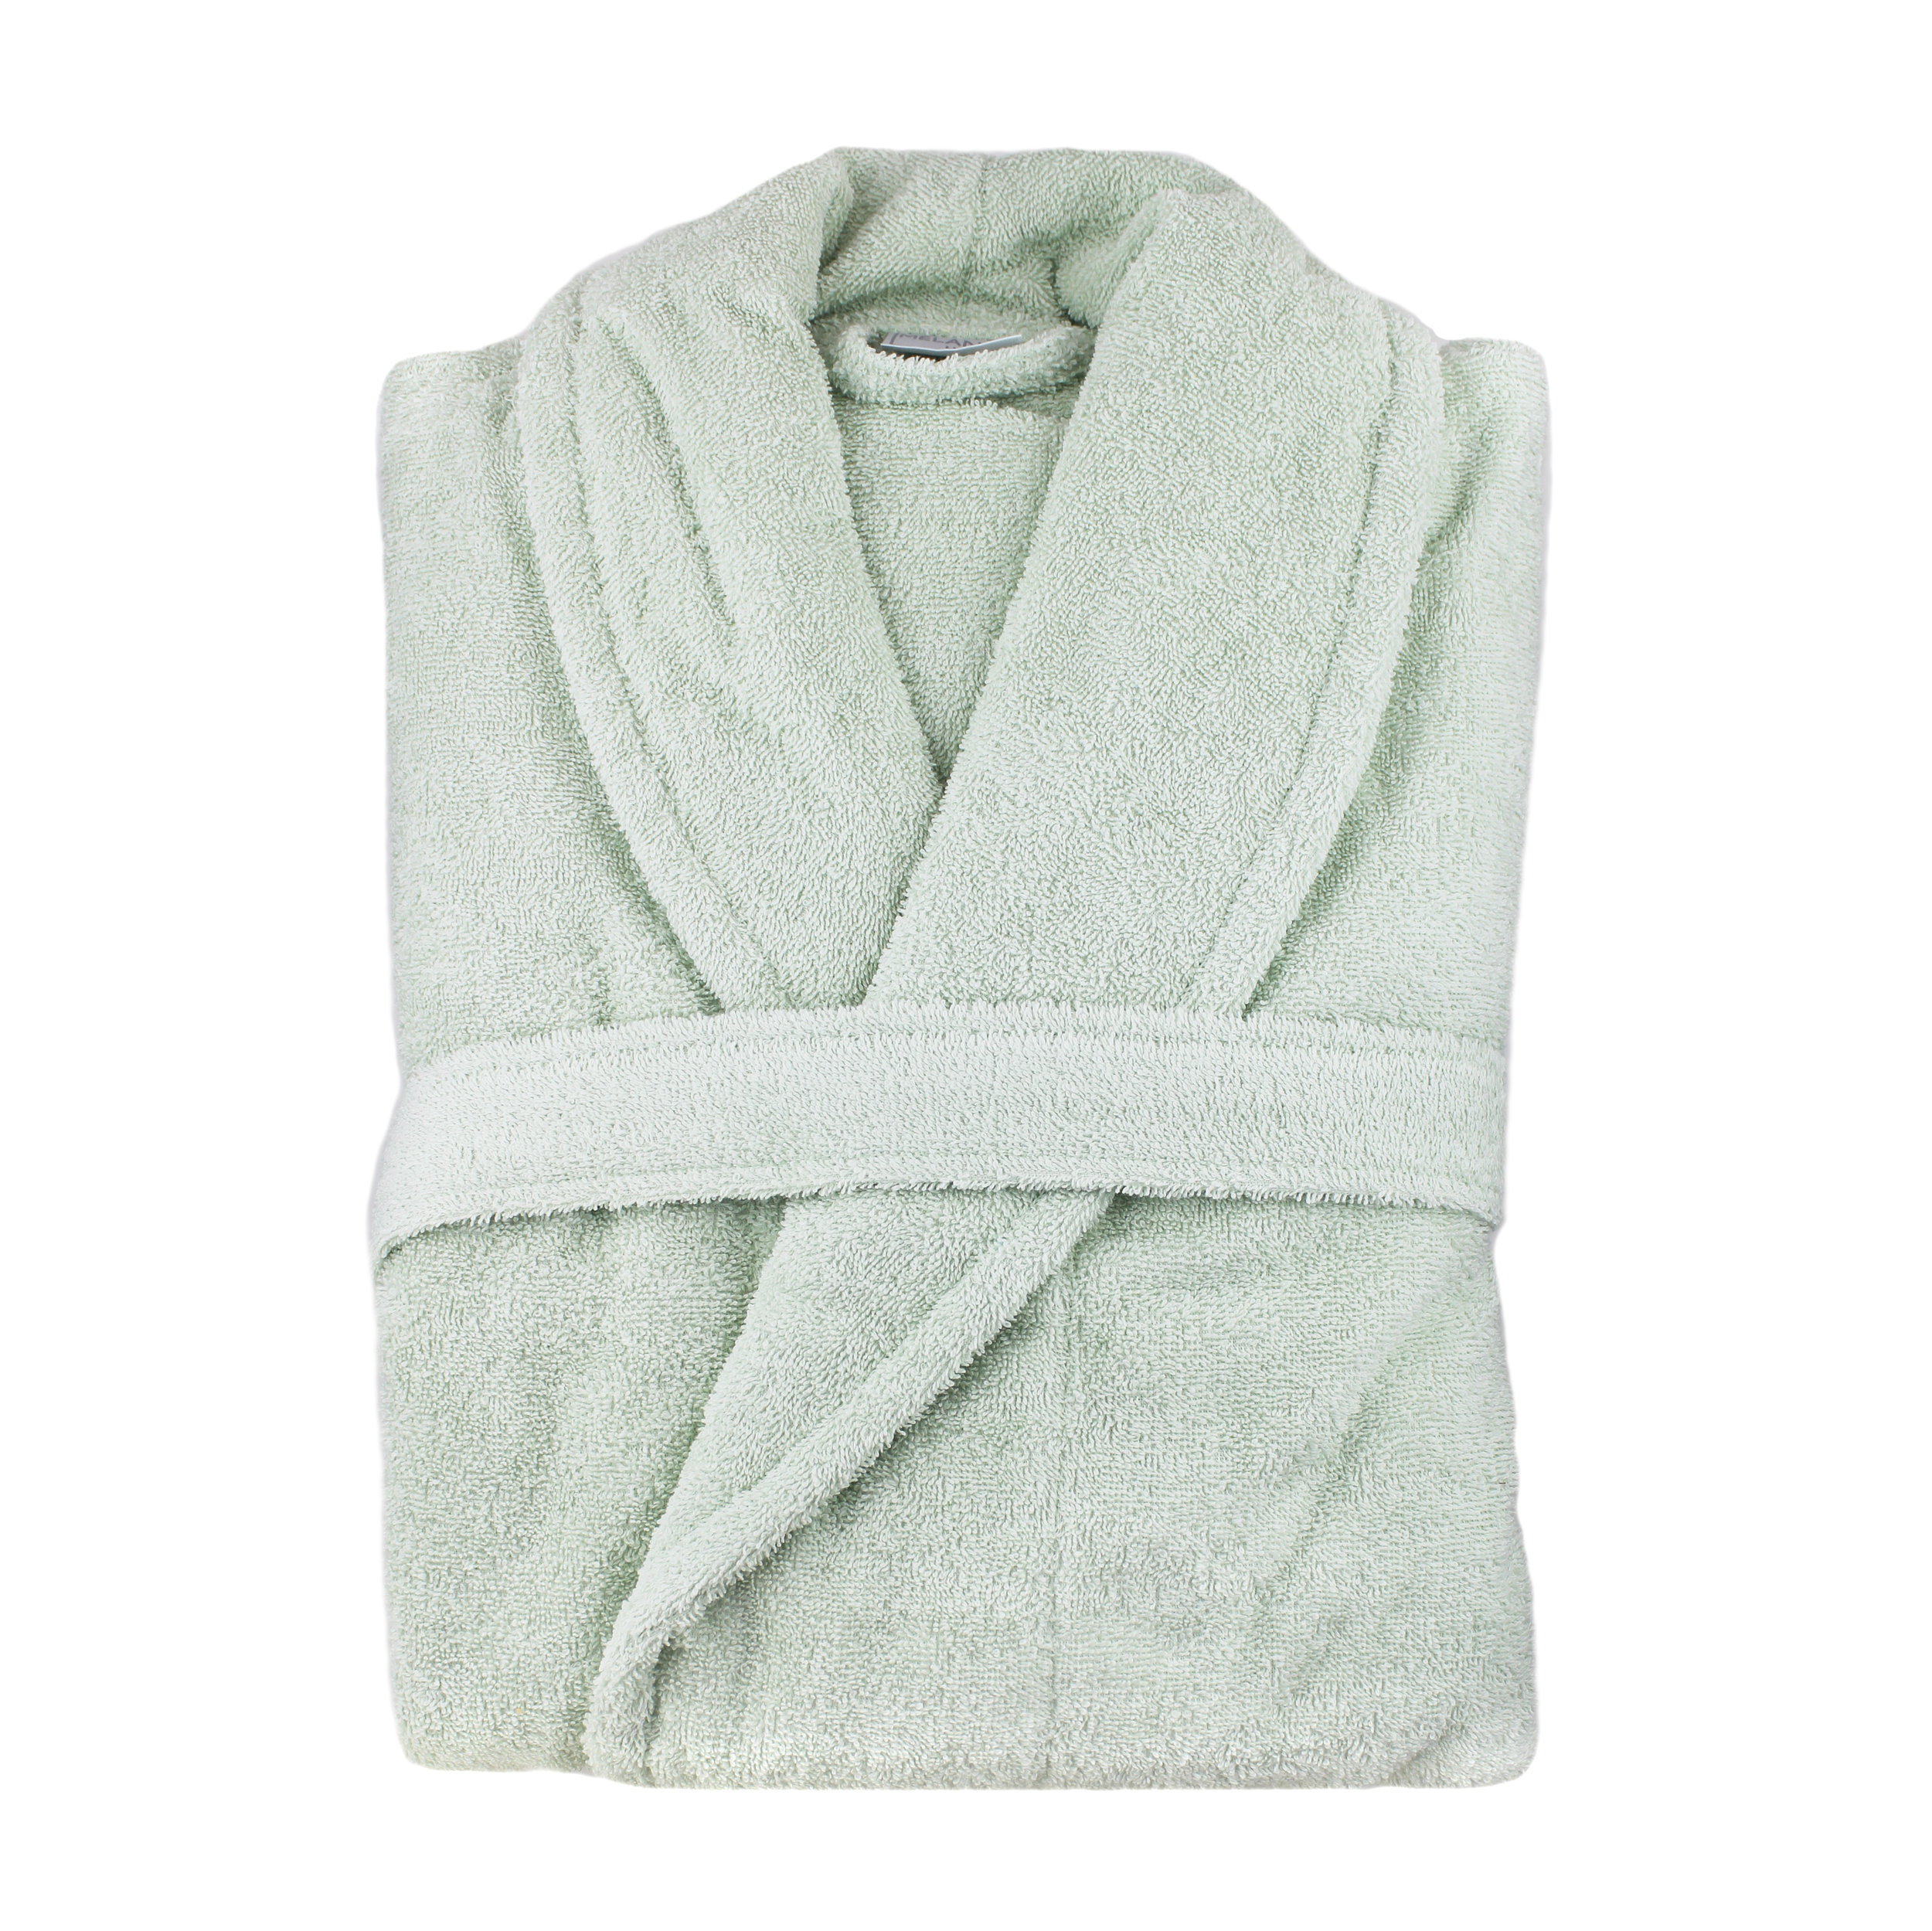 193233 Turkish Bath Robe_Sea Green.jpg